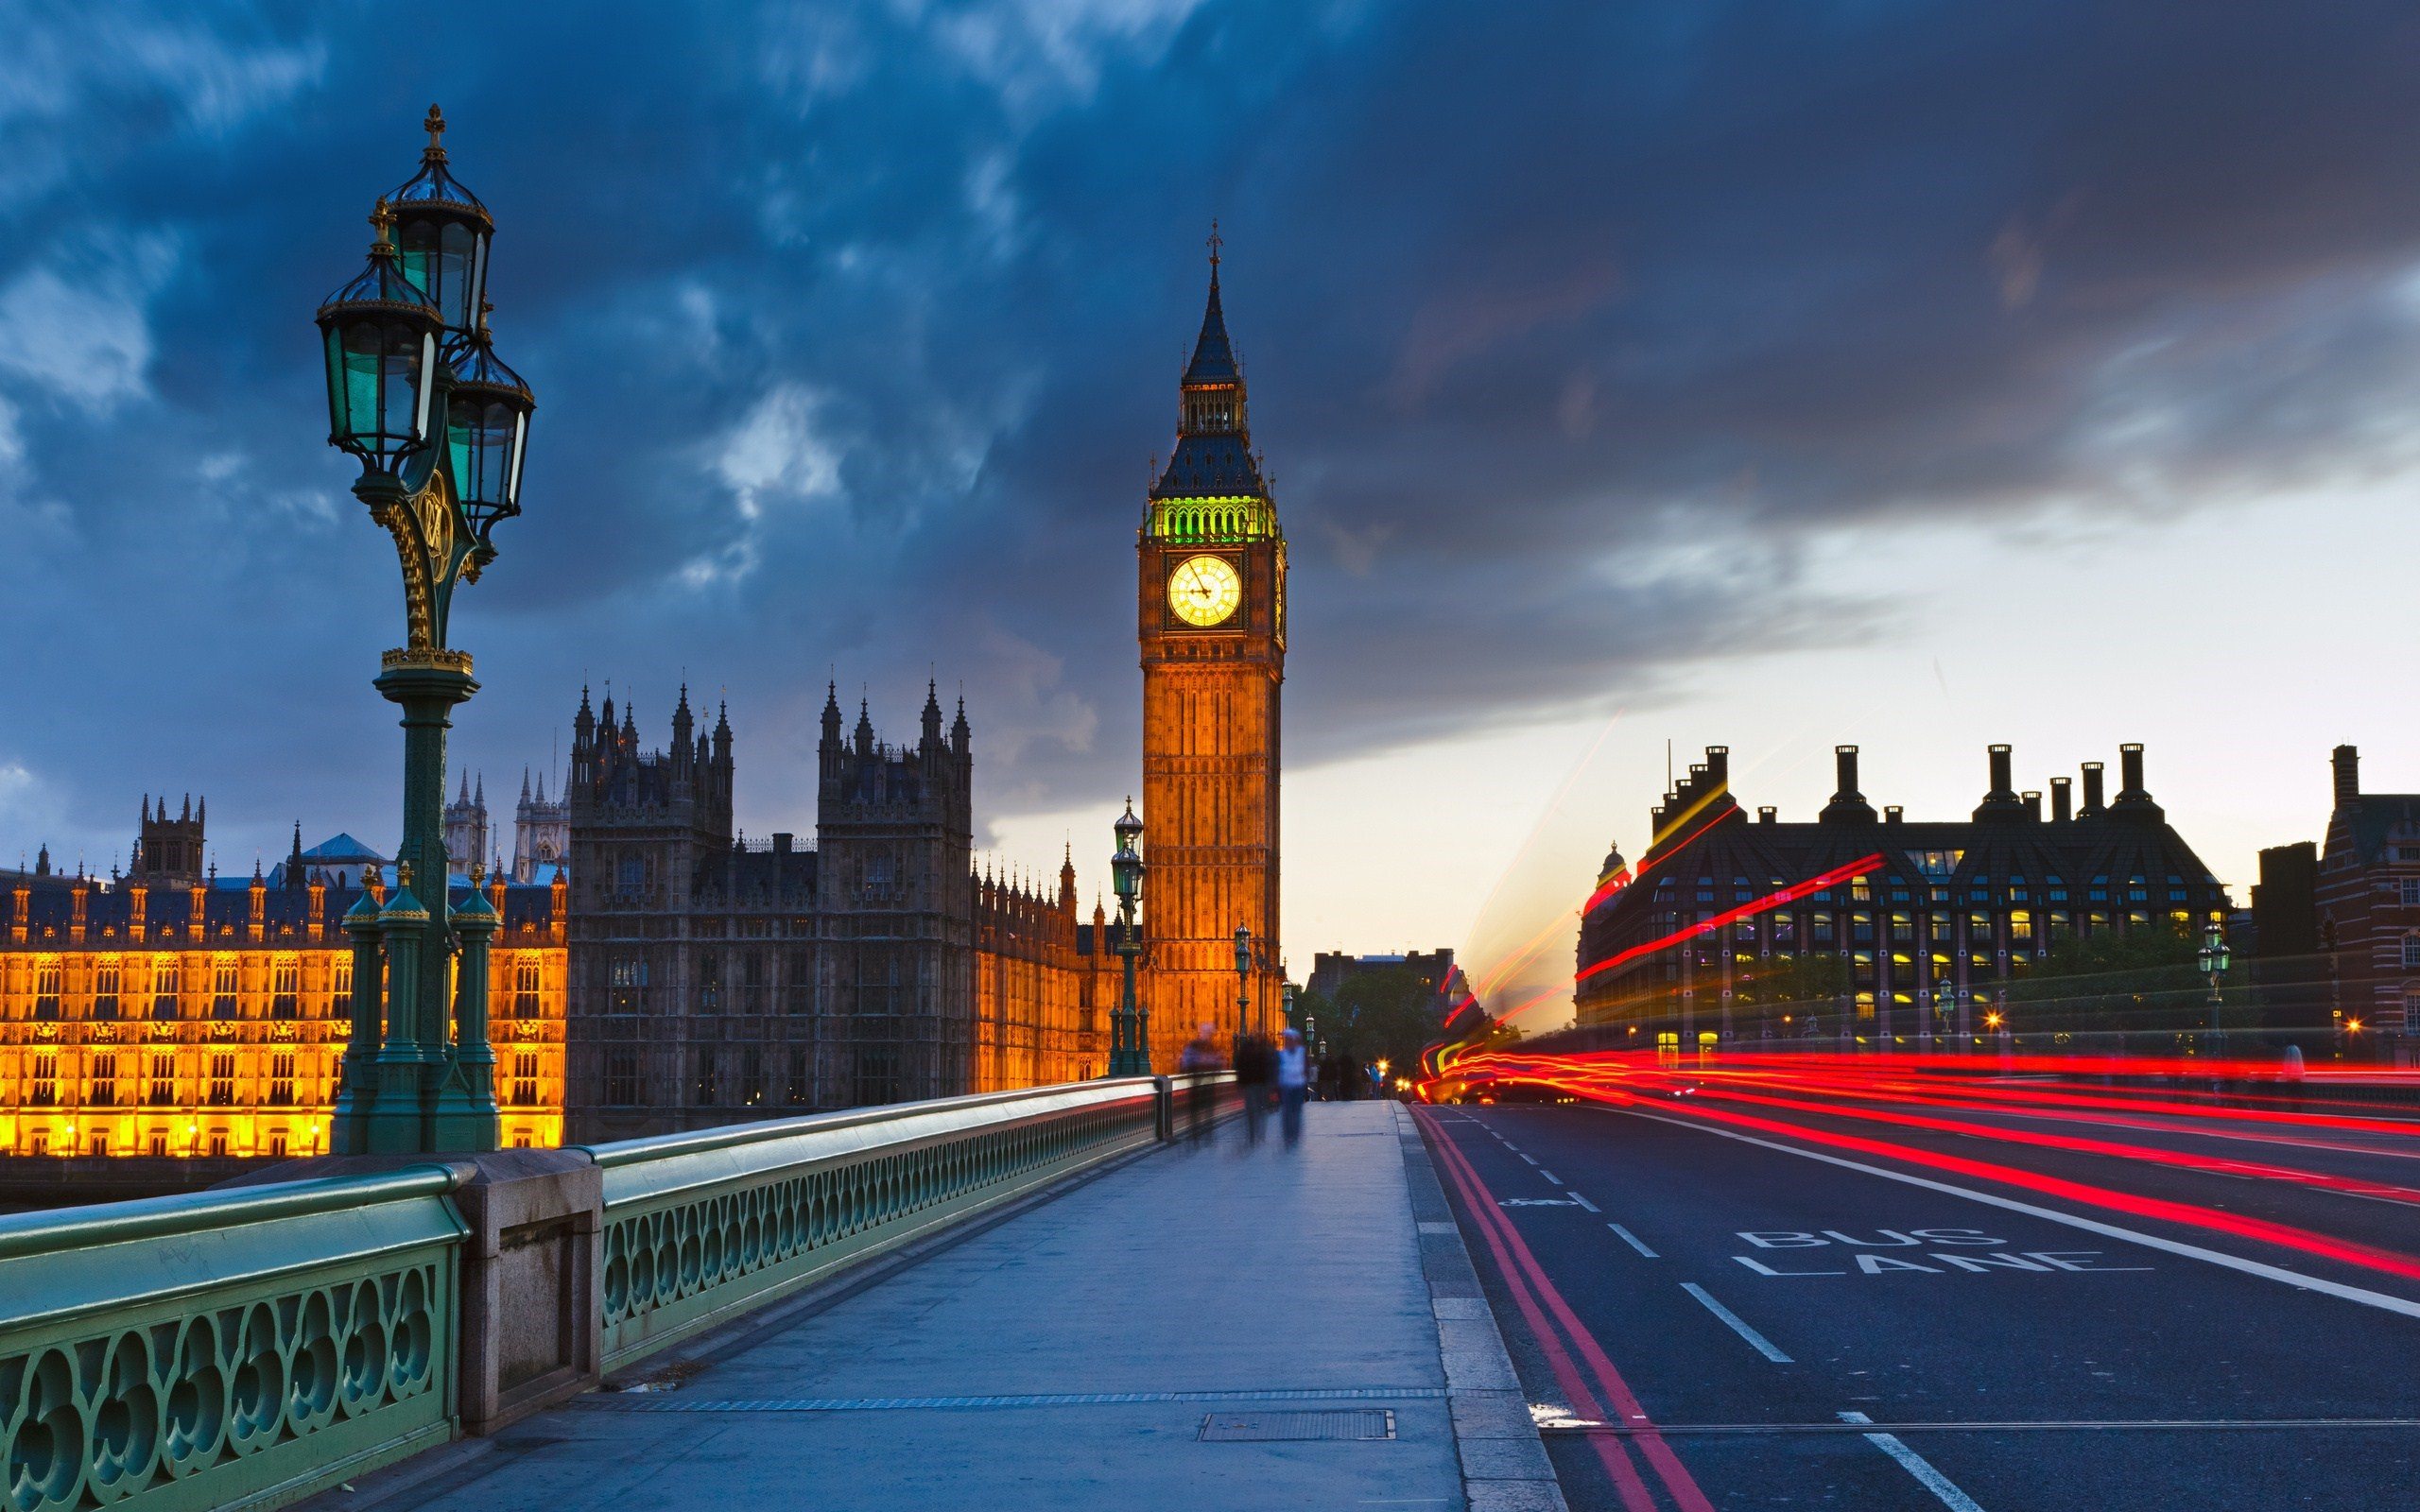 big ben clock london city wallpaper